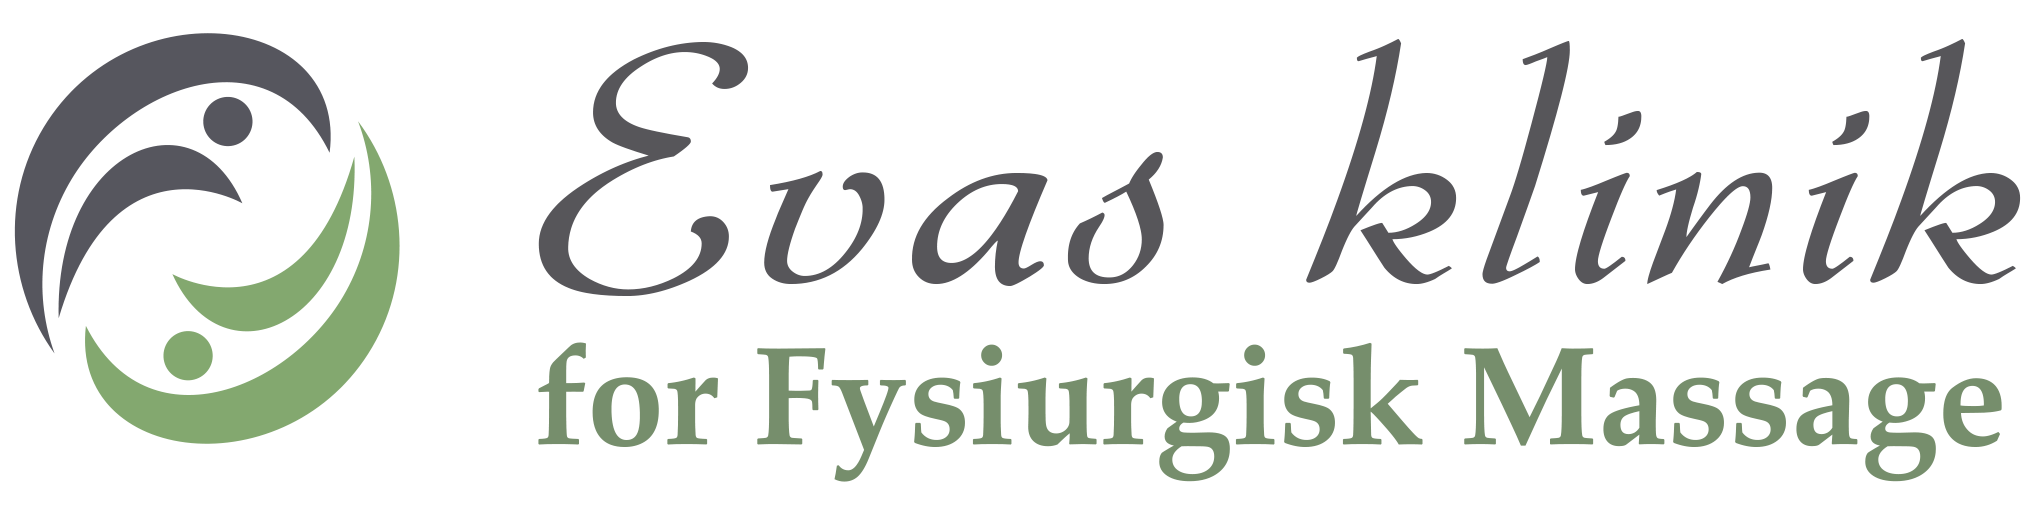 Evas Klinik for Fysiurgisk Massage